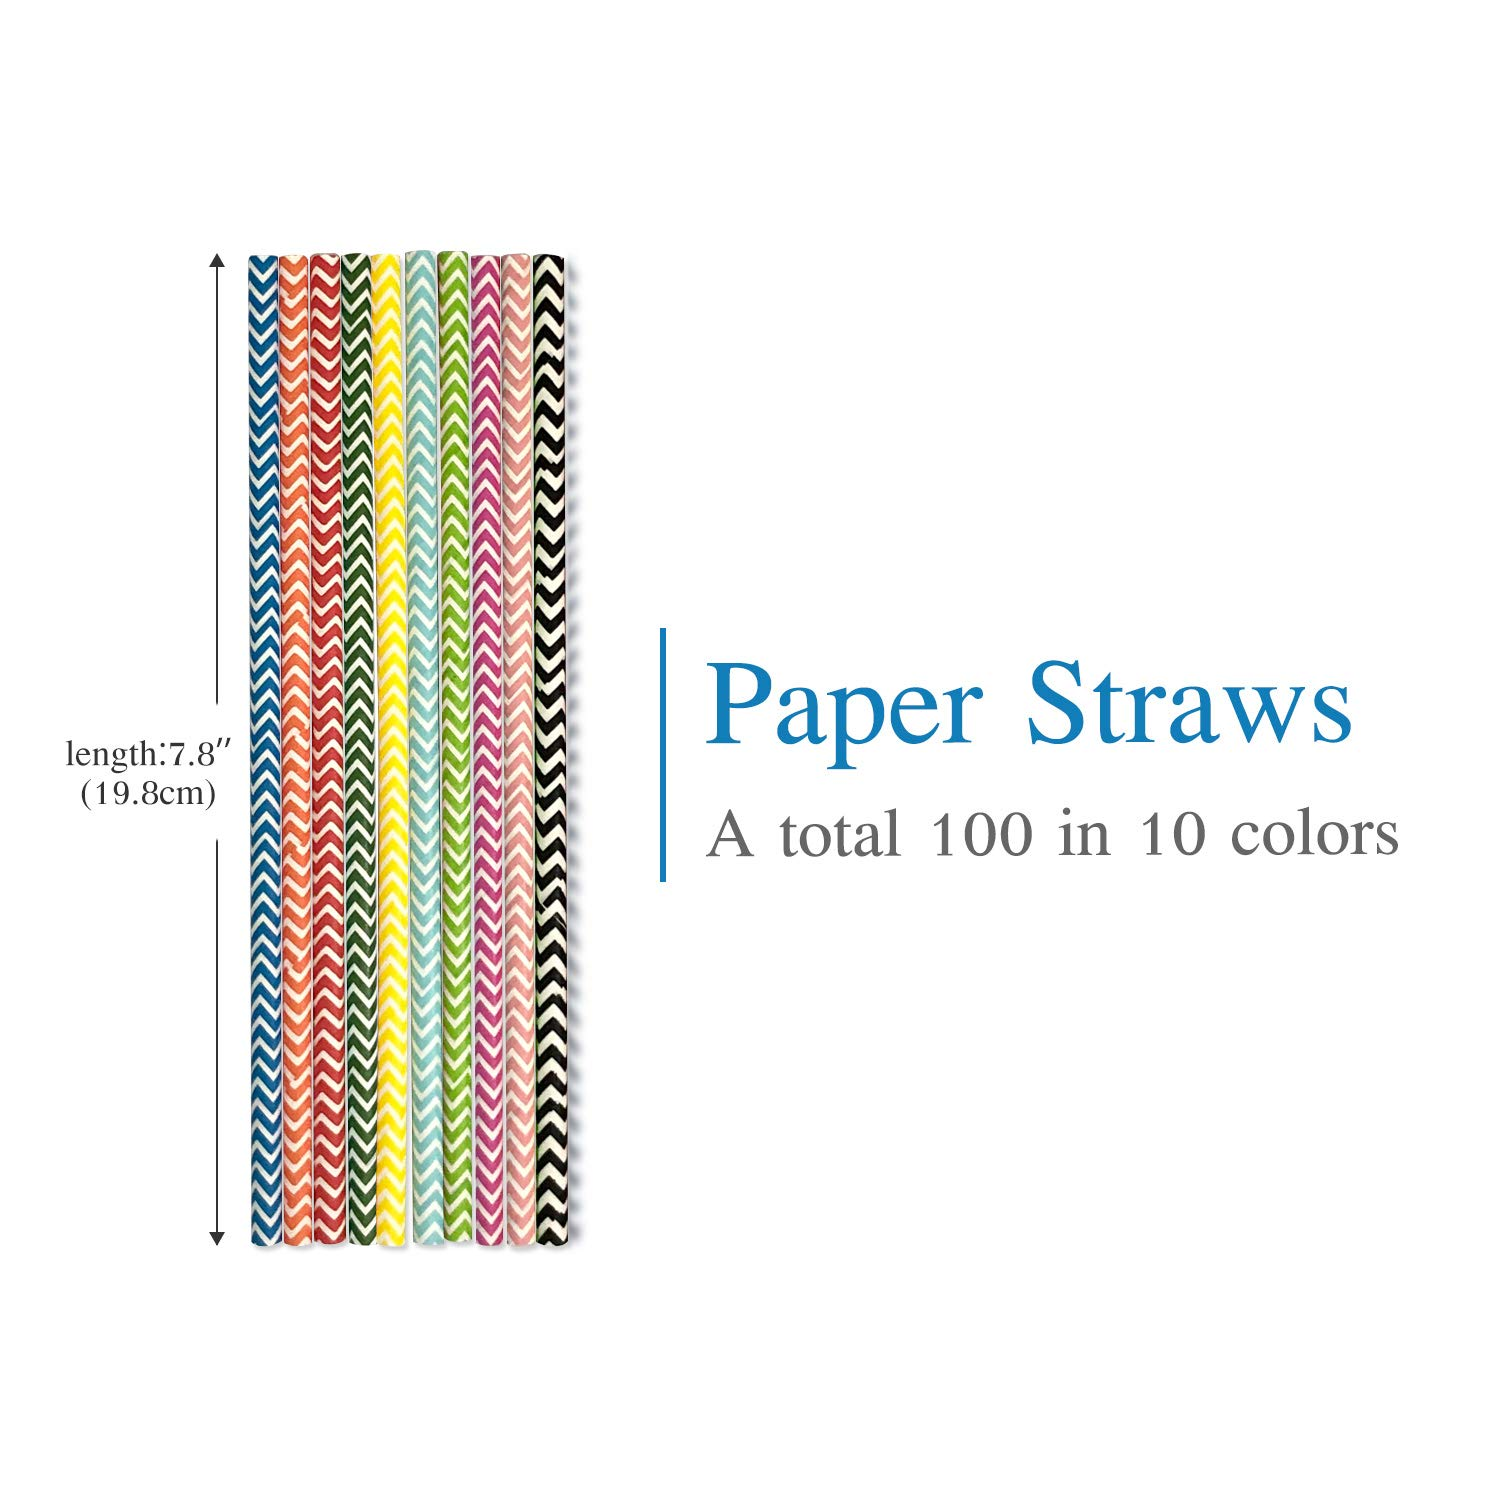 Paper Drinking Straws from Eco-Friendly Recyclable Kraft Paper 100Pcs,Great for Cocktails Cold Drinks and Juices,Suitable for Parties Weddings and All Occasions